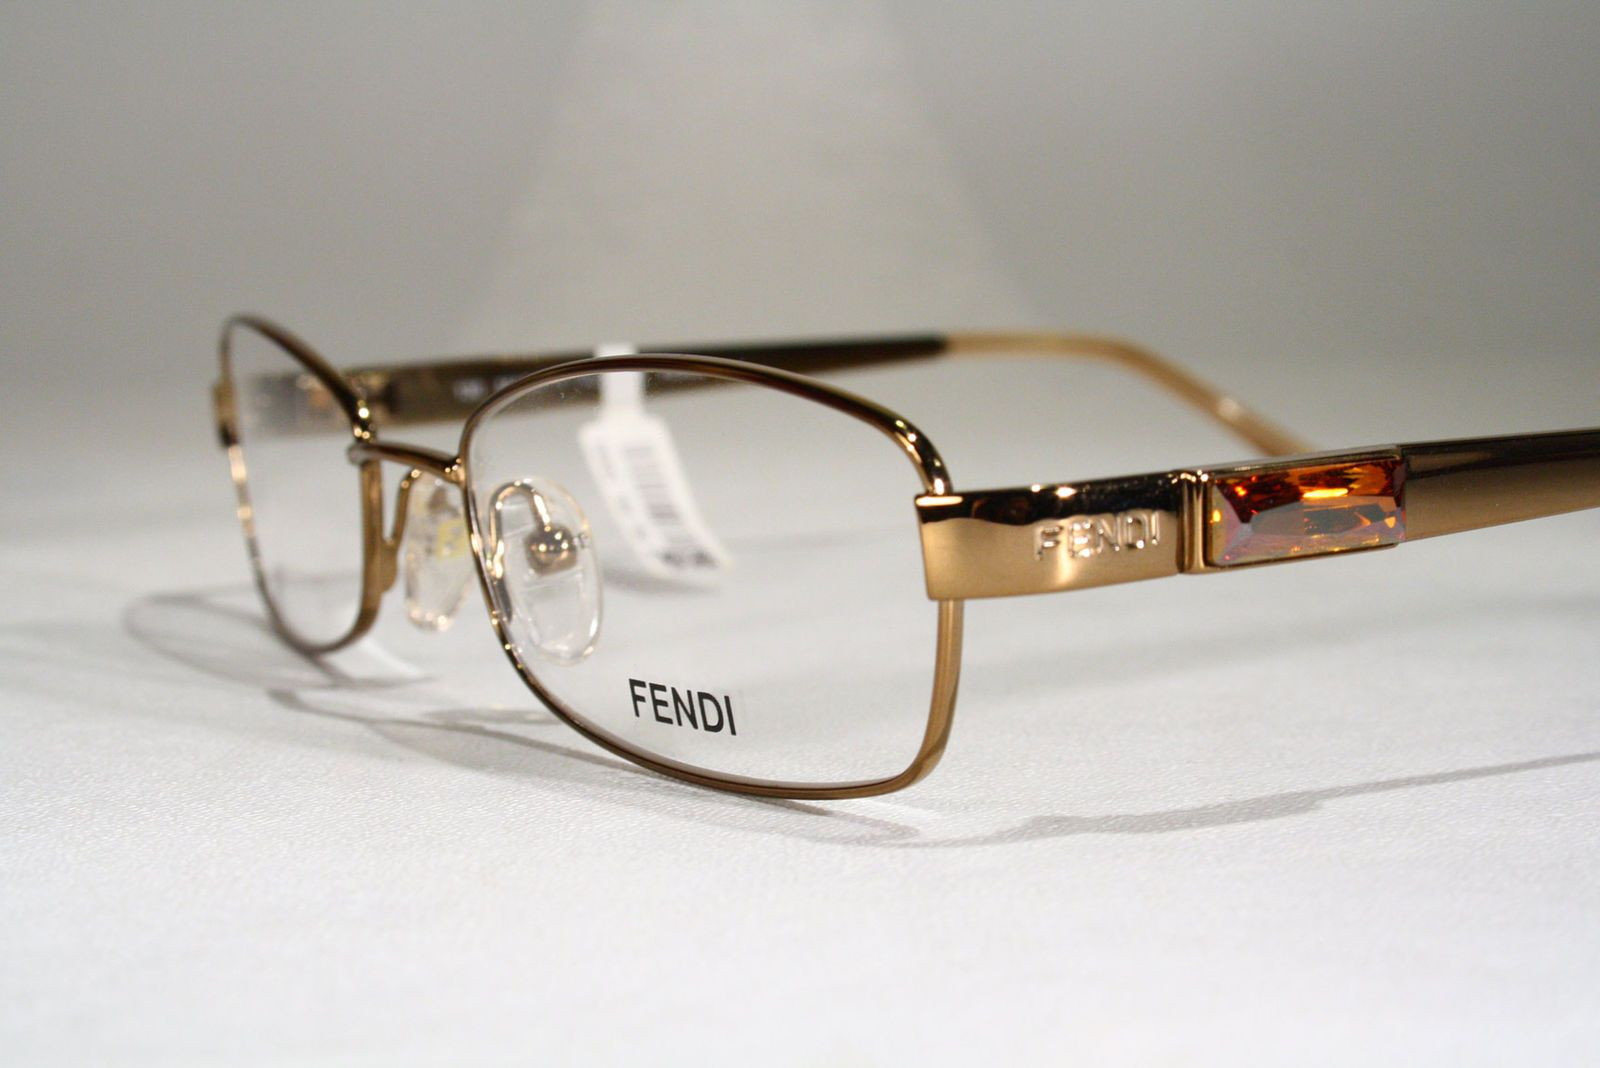 98a21415144e Women s FENDI Glossy Rich Gold   Orange Jewels Optical Eyeglass Frames  Glasses + Case   eBay (RipVanW)